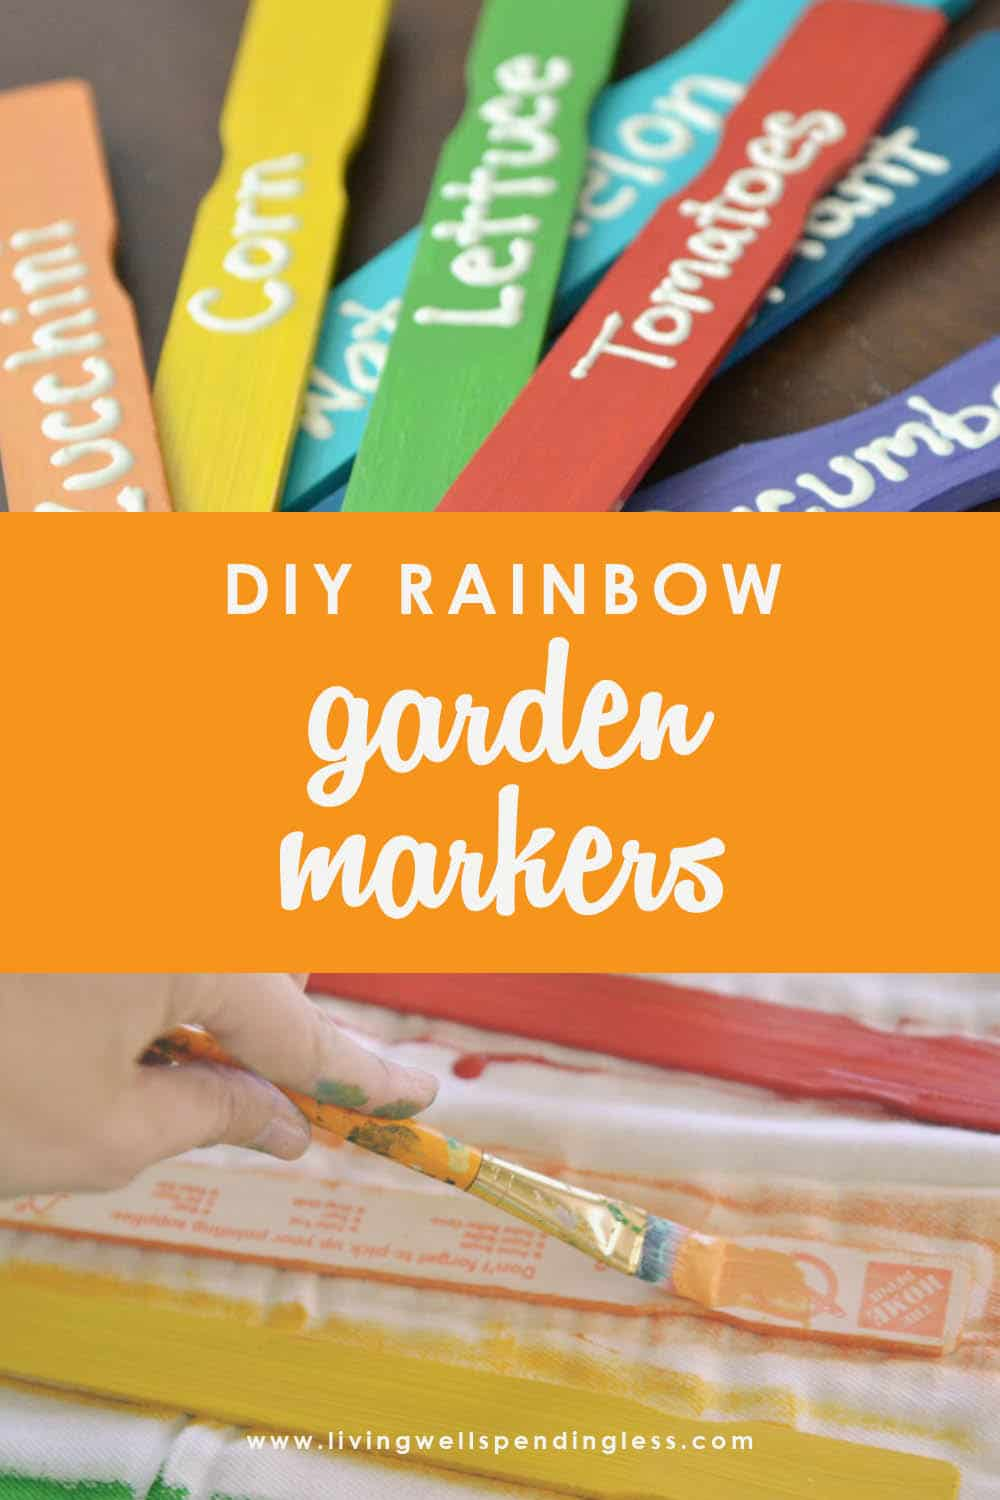 Looking for a cute and fun way to decorate your garden and remember what you planted where? These DIY Rainbow Garden Markers are adorable and a snap to make! #gardenmarkers #gardenmarkerideas #gardenmarkerhacks #gardening #diyhomedecor #diygarden